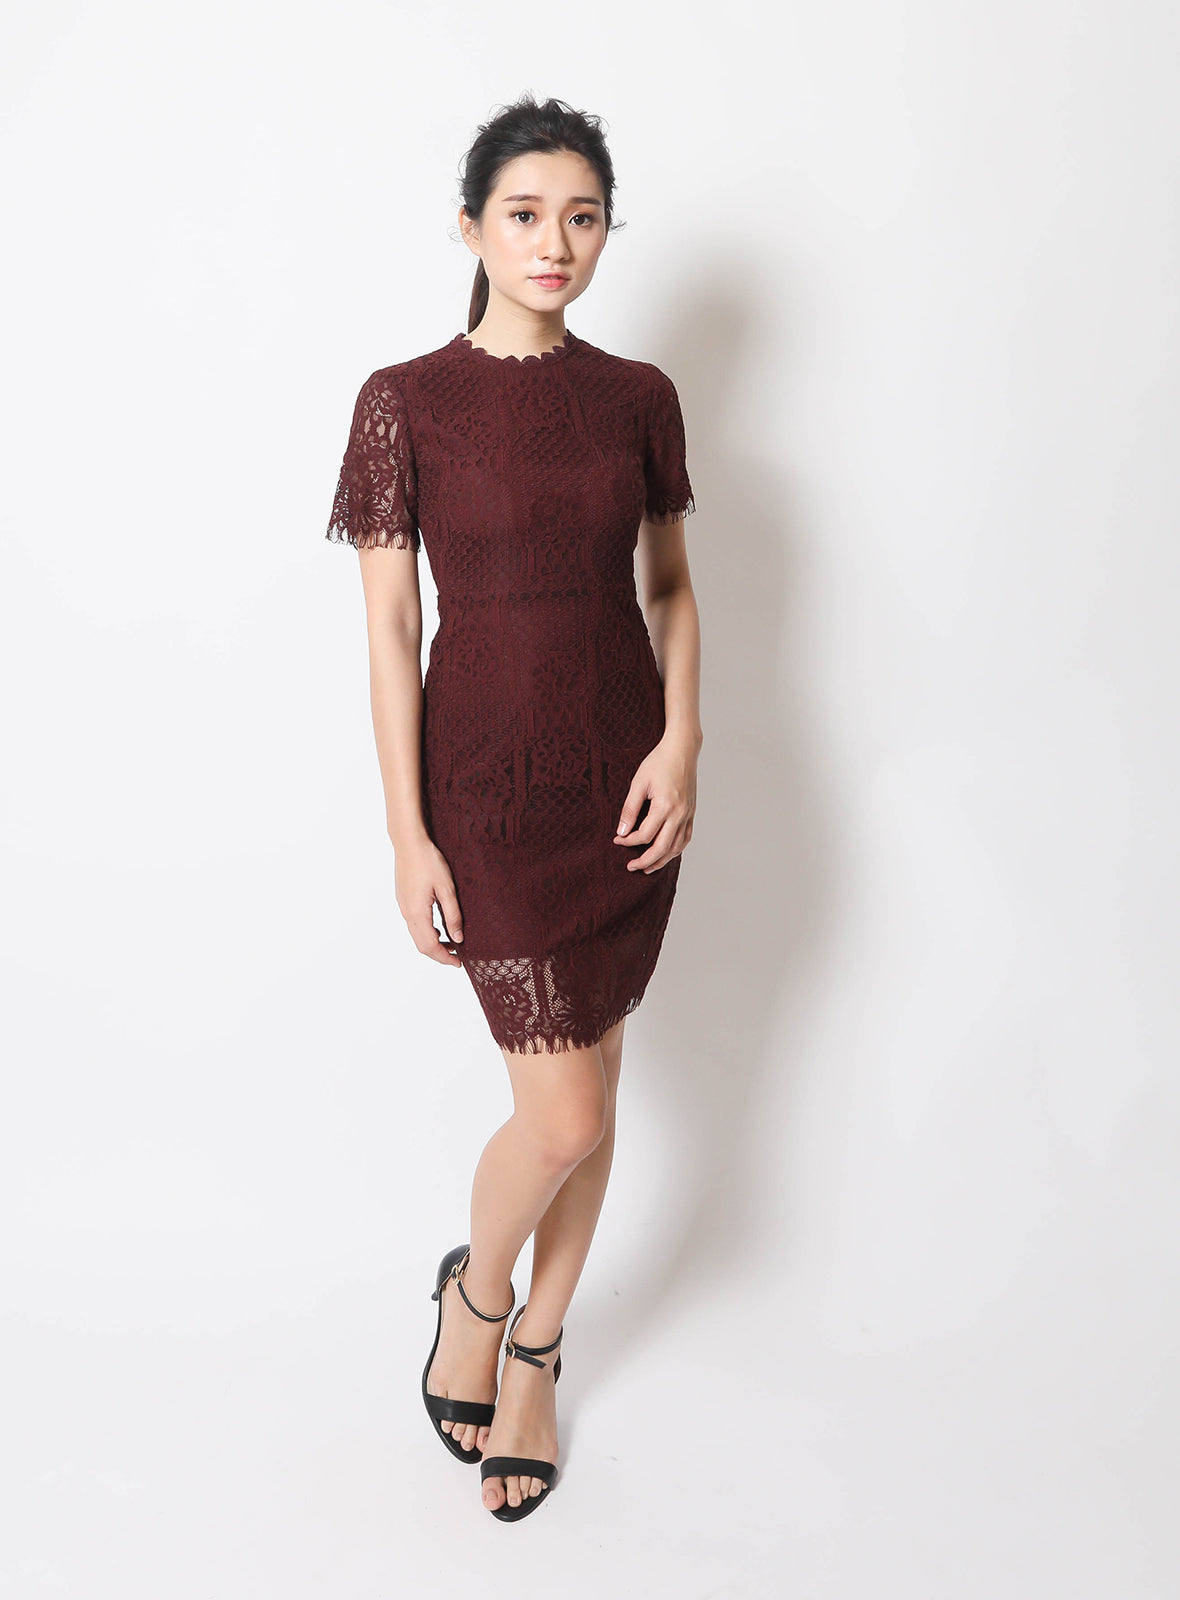 Piper Dress in Burgundy